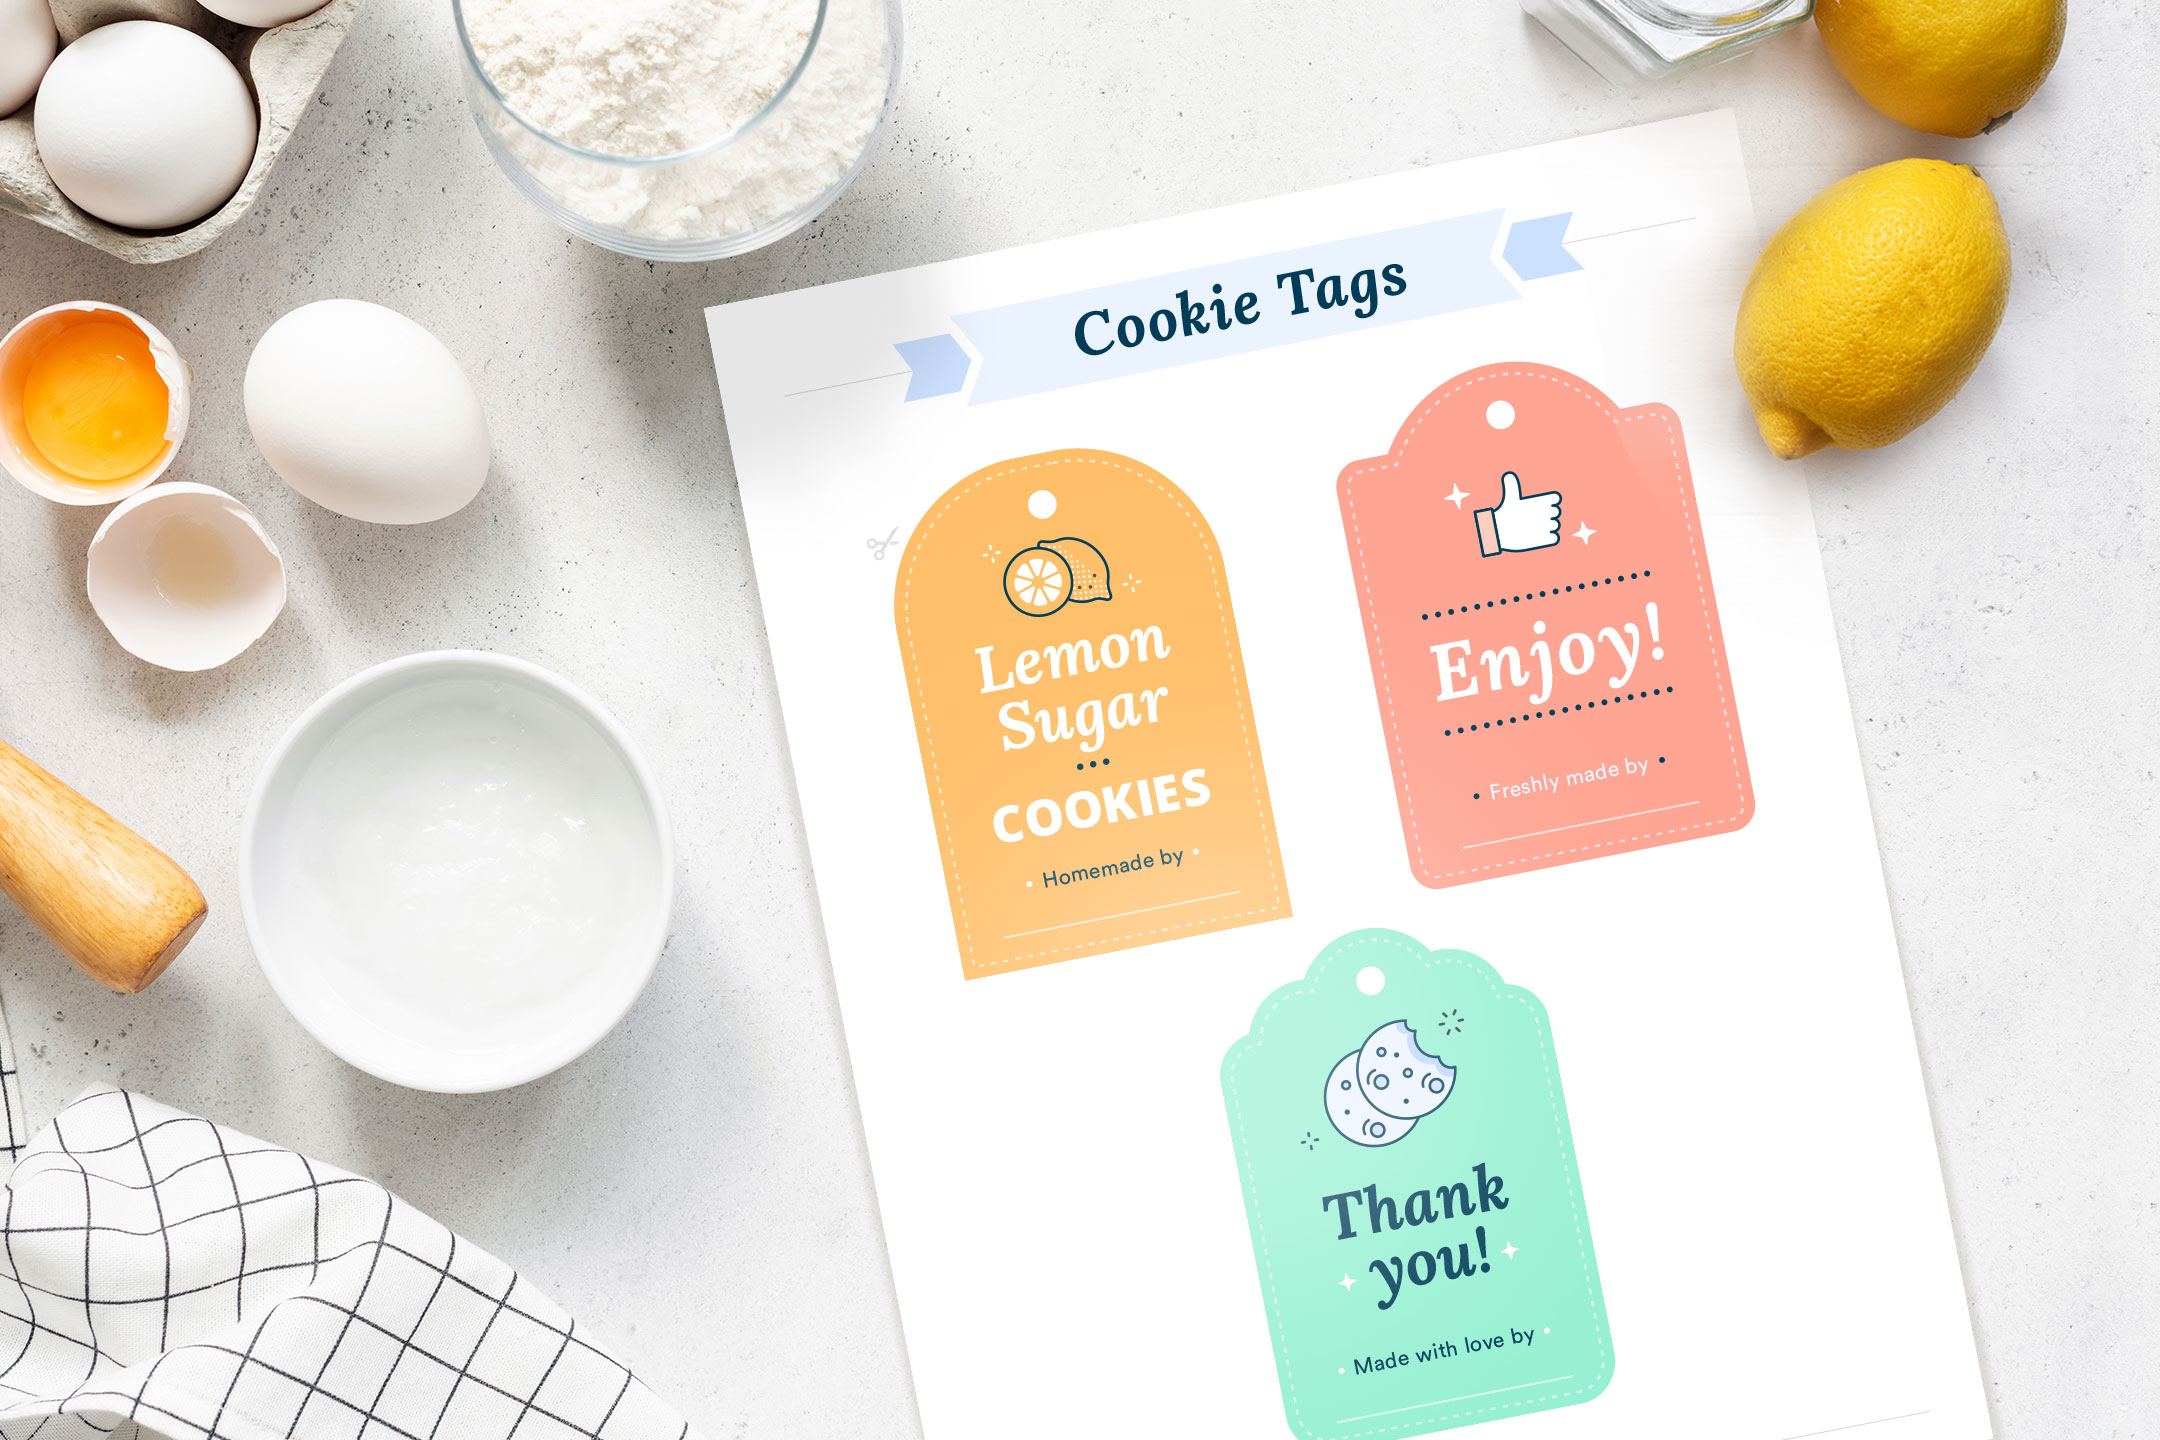 Cookie tags